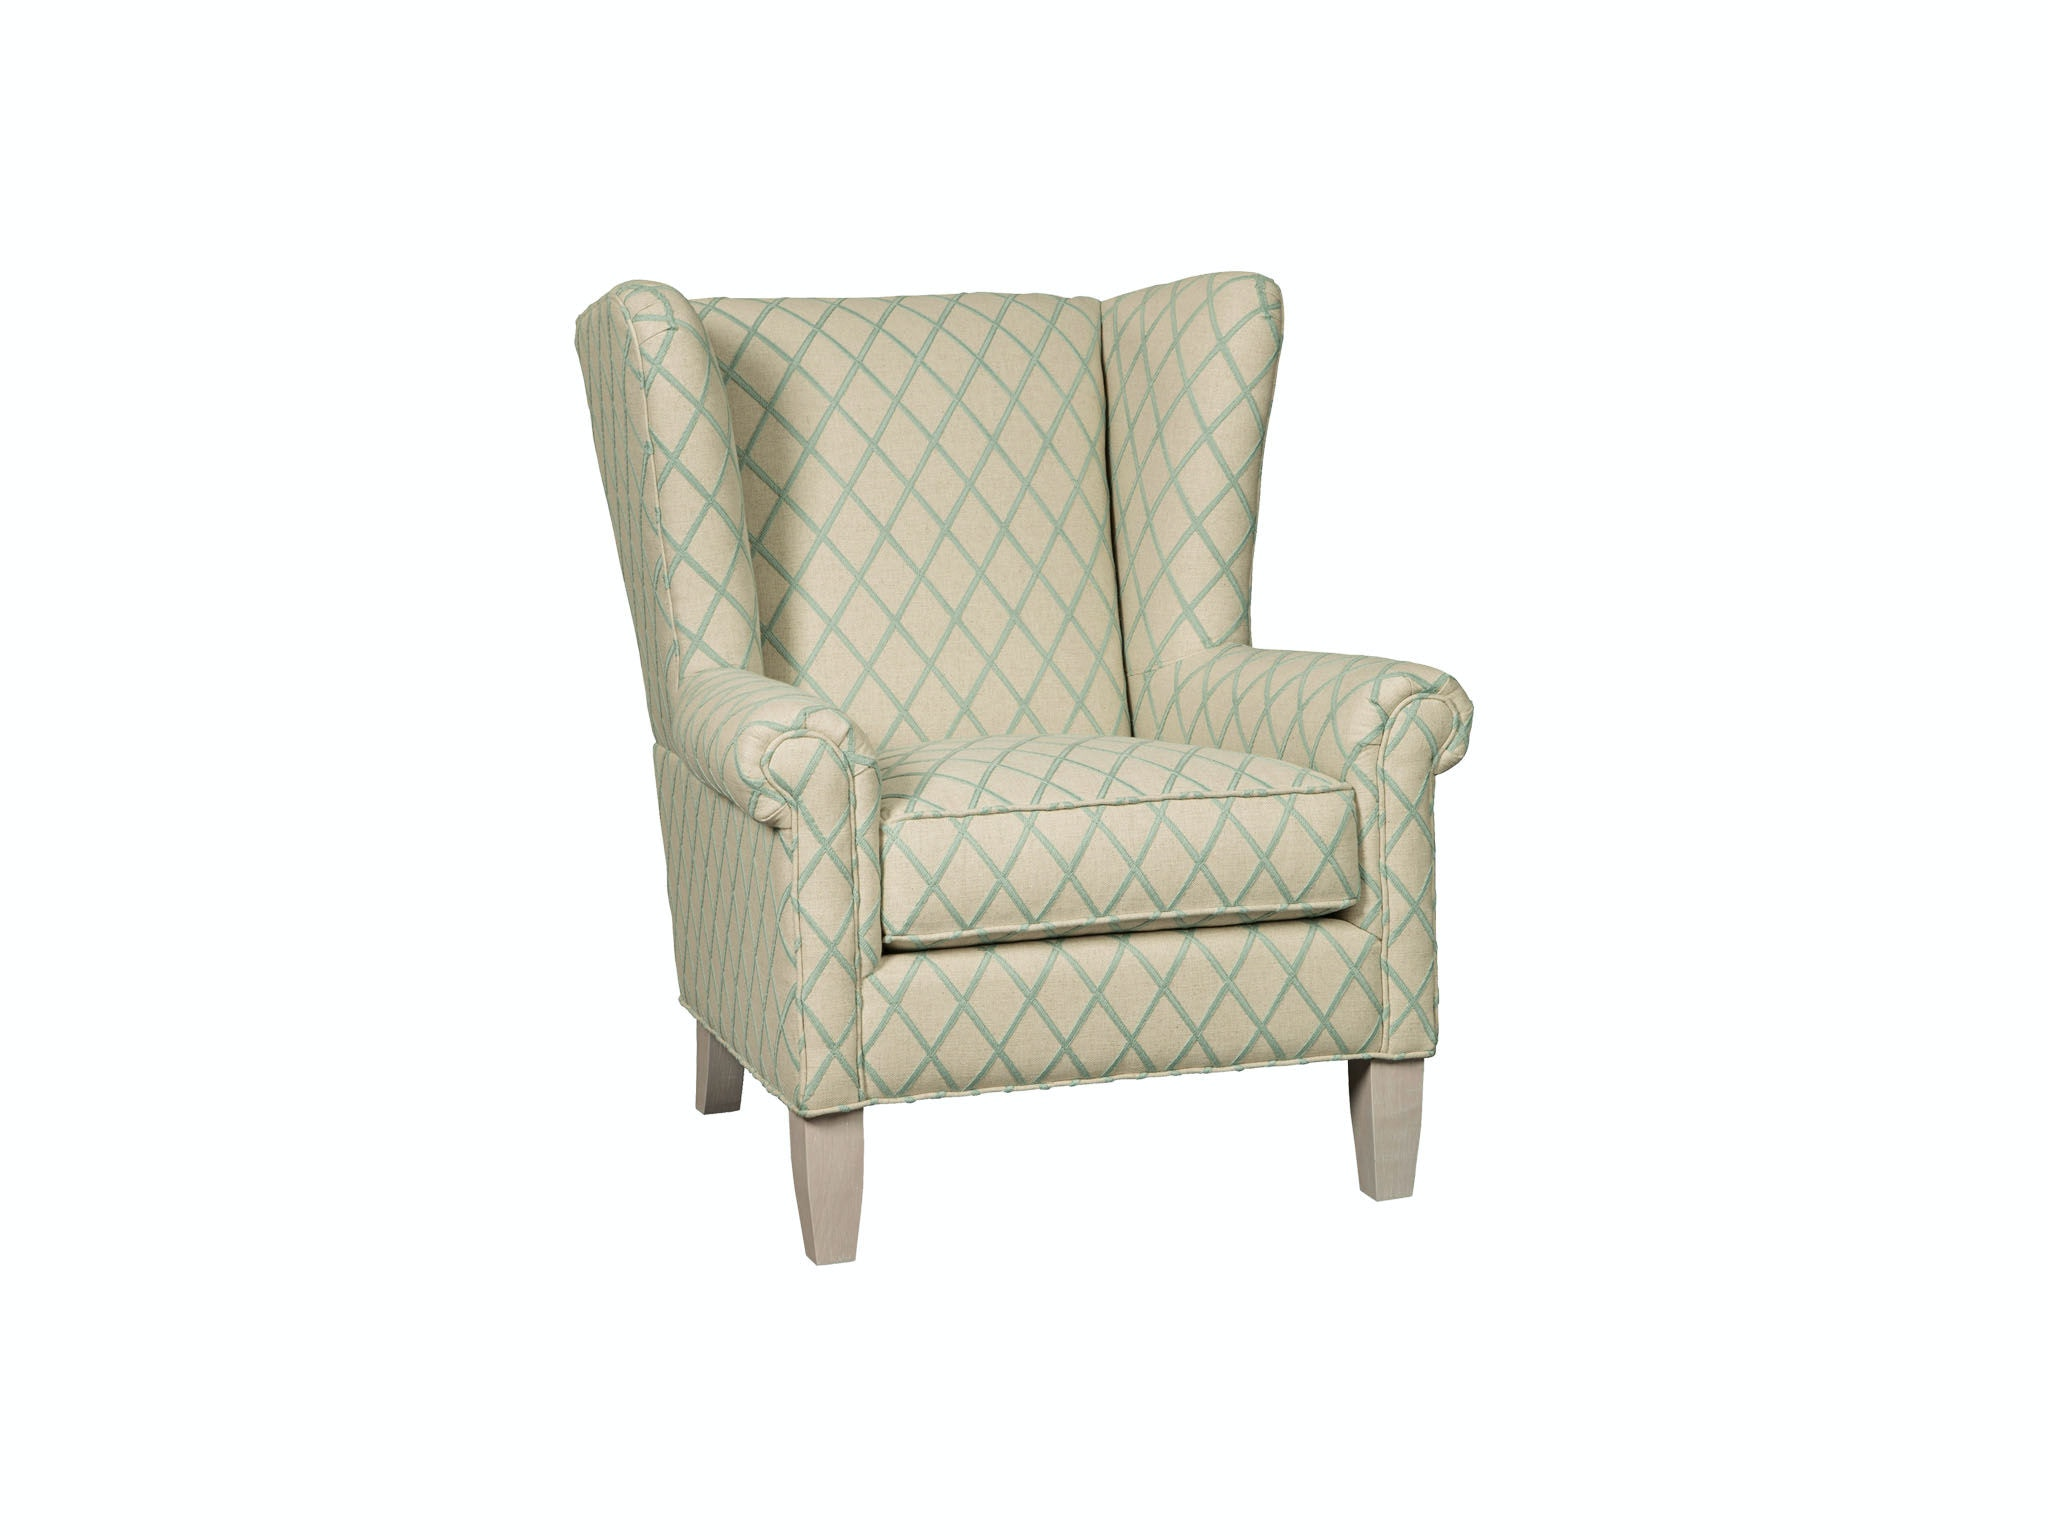 Paula Deen By Craftmaster Chair P076710BD